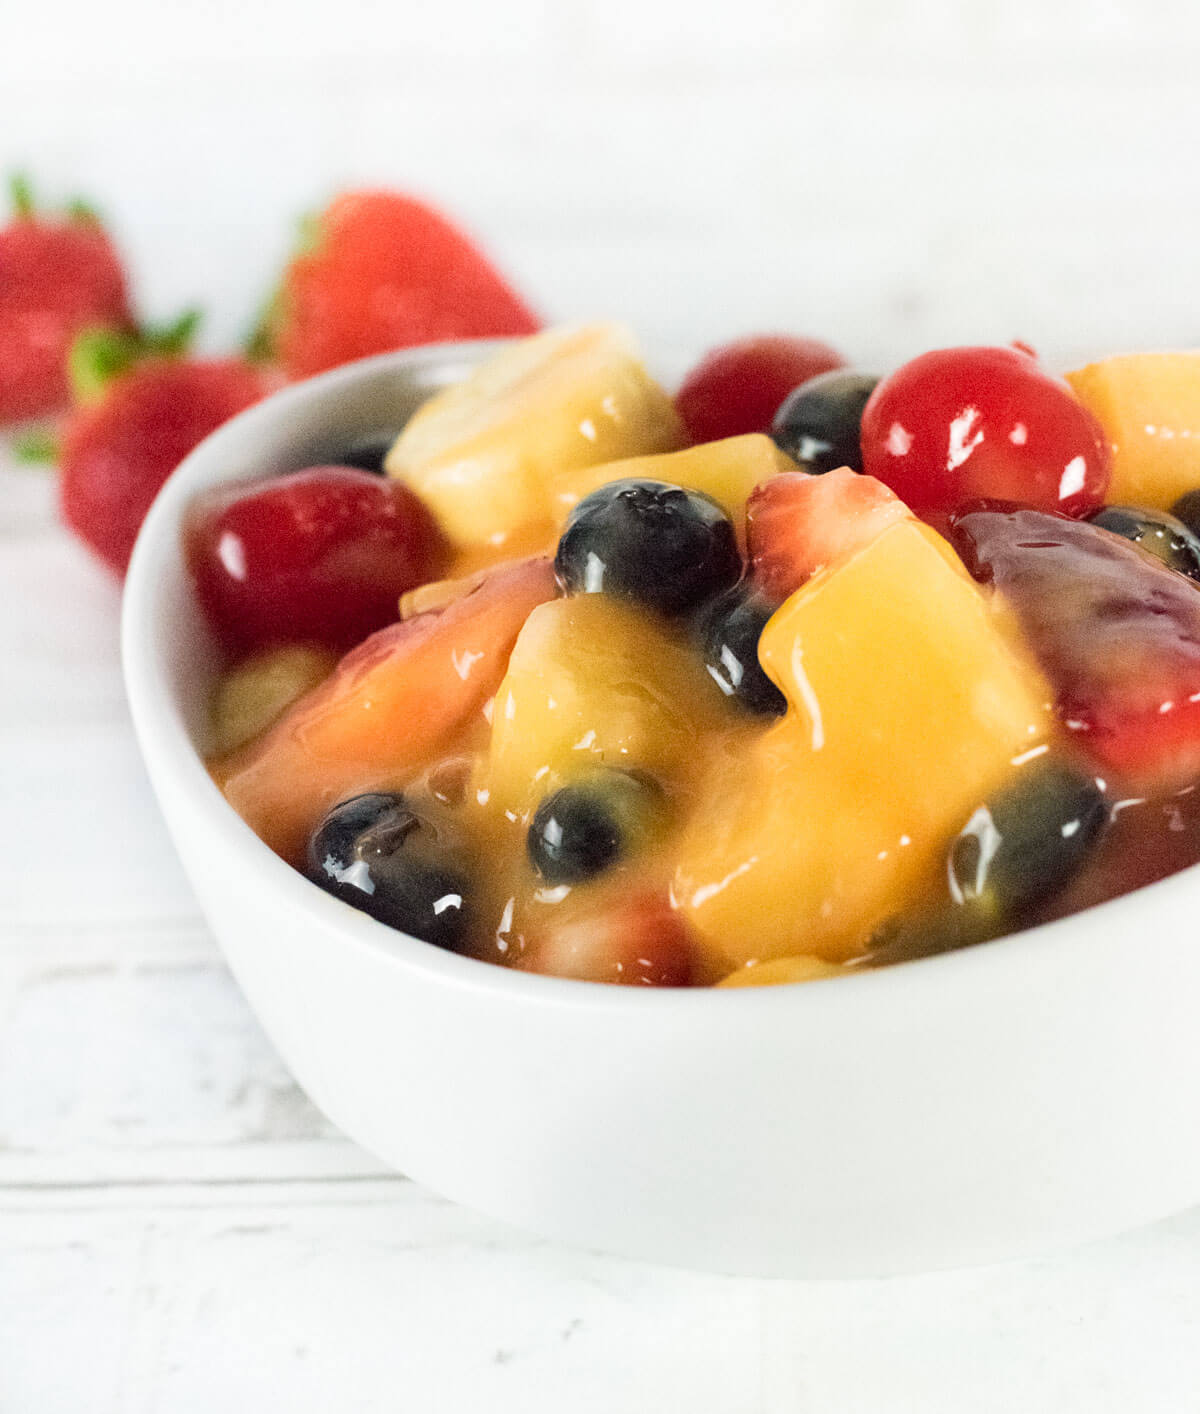 Fruit Salad recipe with Pudding shown close up